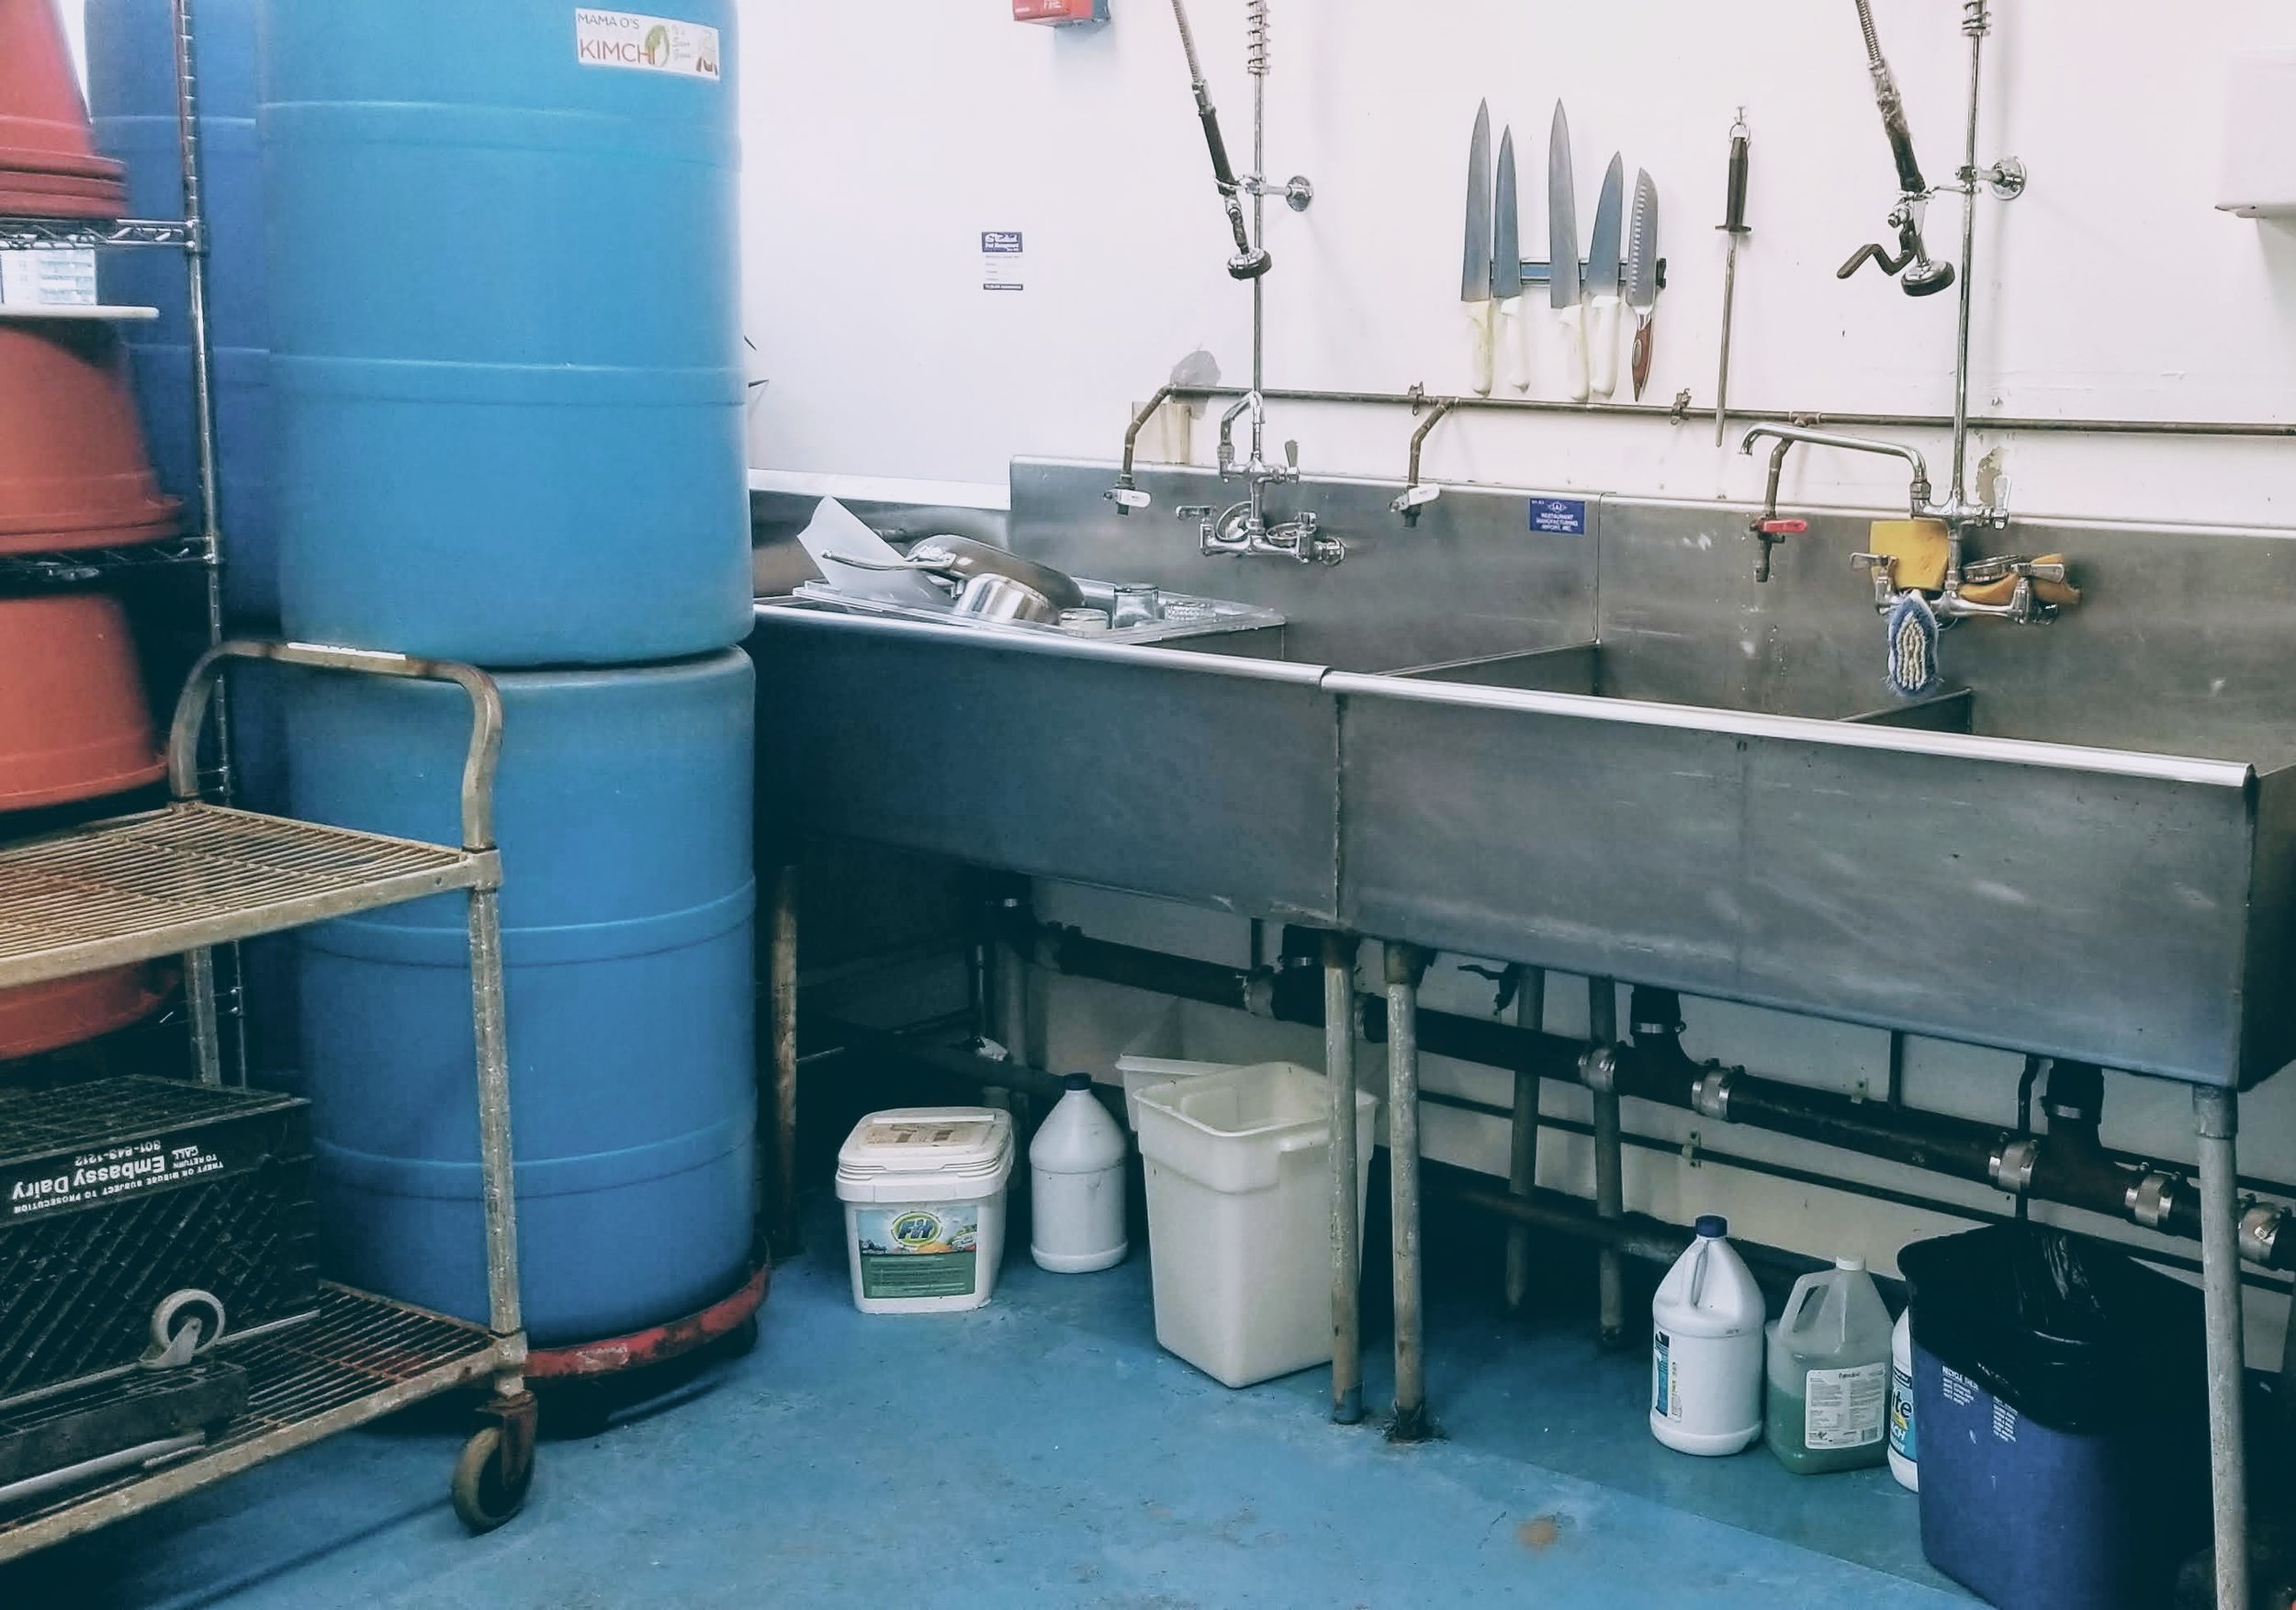 Inadequate storage of chemicals and poor sanitation indicate a breakdown in food safe systems